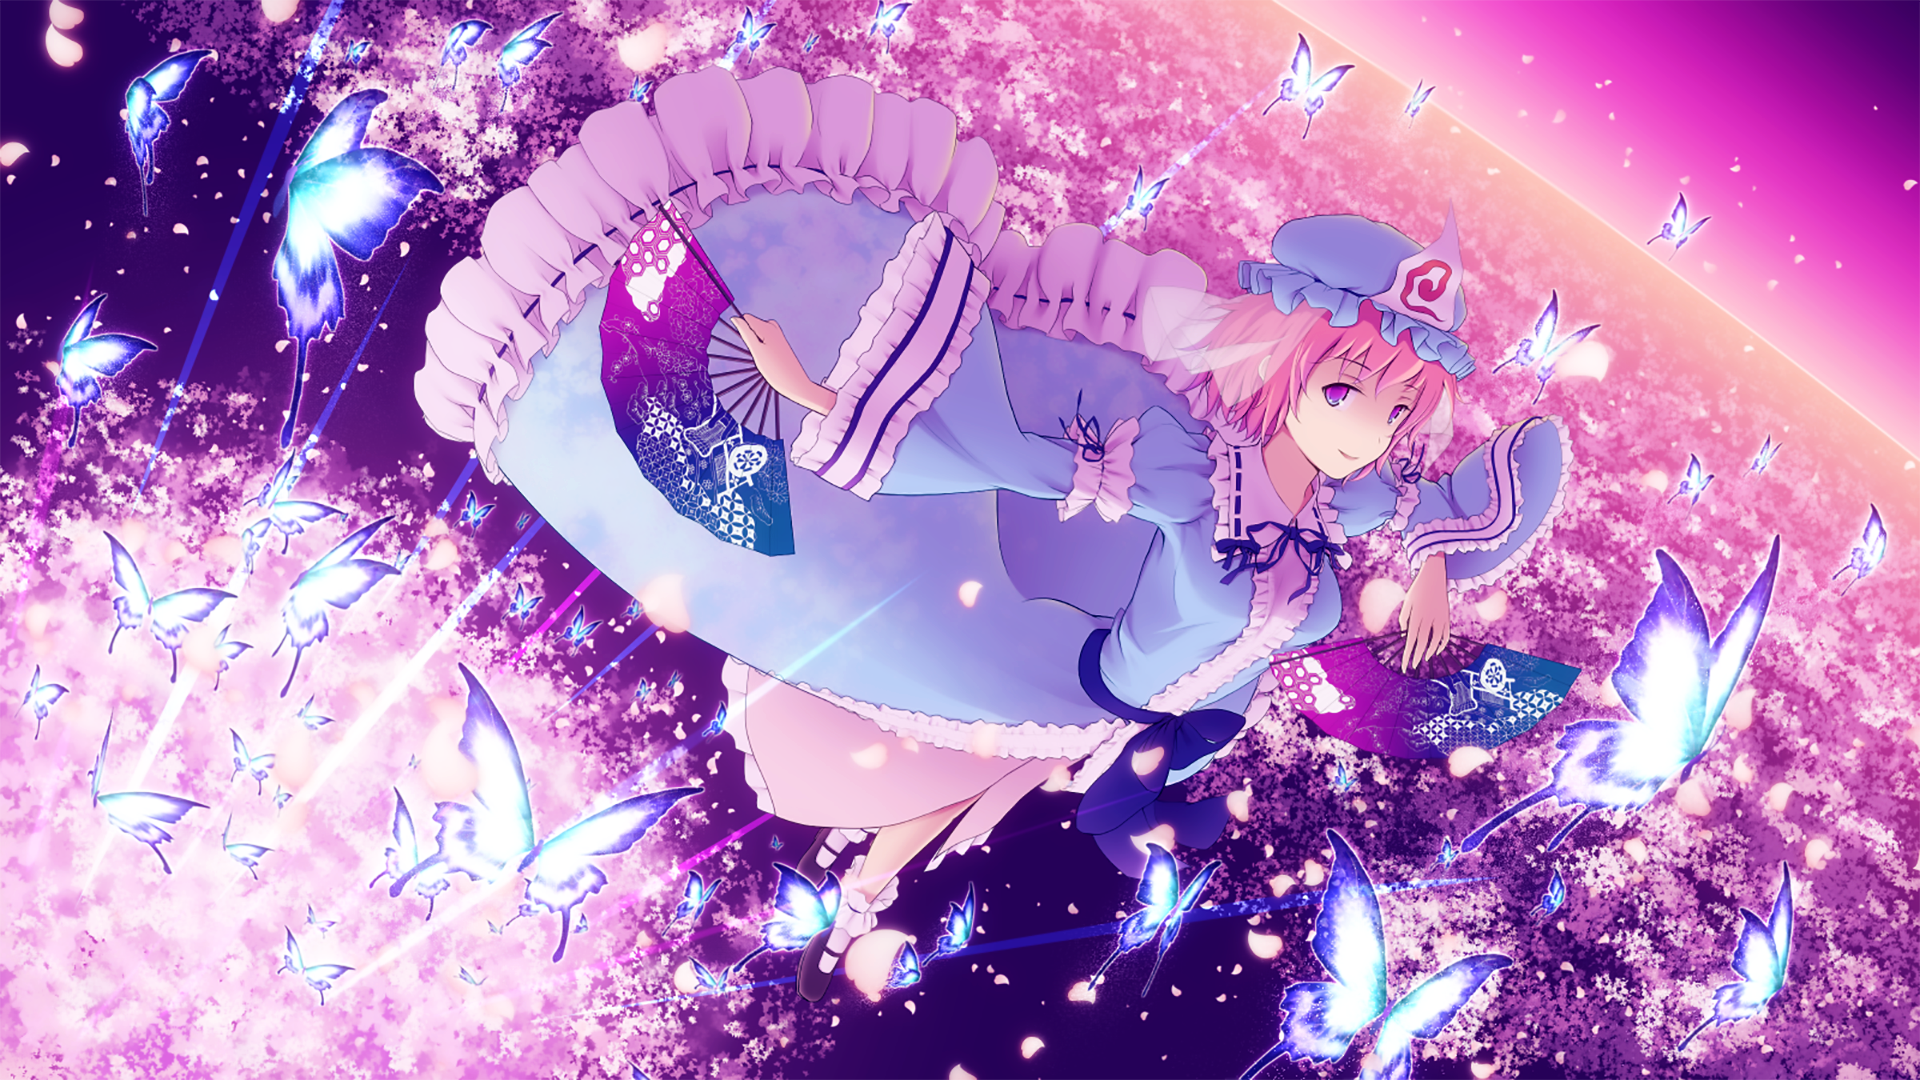 Anime - Touhou  Anime Woman Pretty Pink Butterfly Short Hair Scenic Pink Eyes Fan Yuyuko Saigyouji Wallpaper